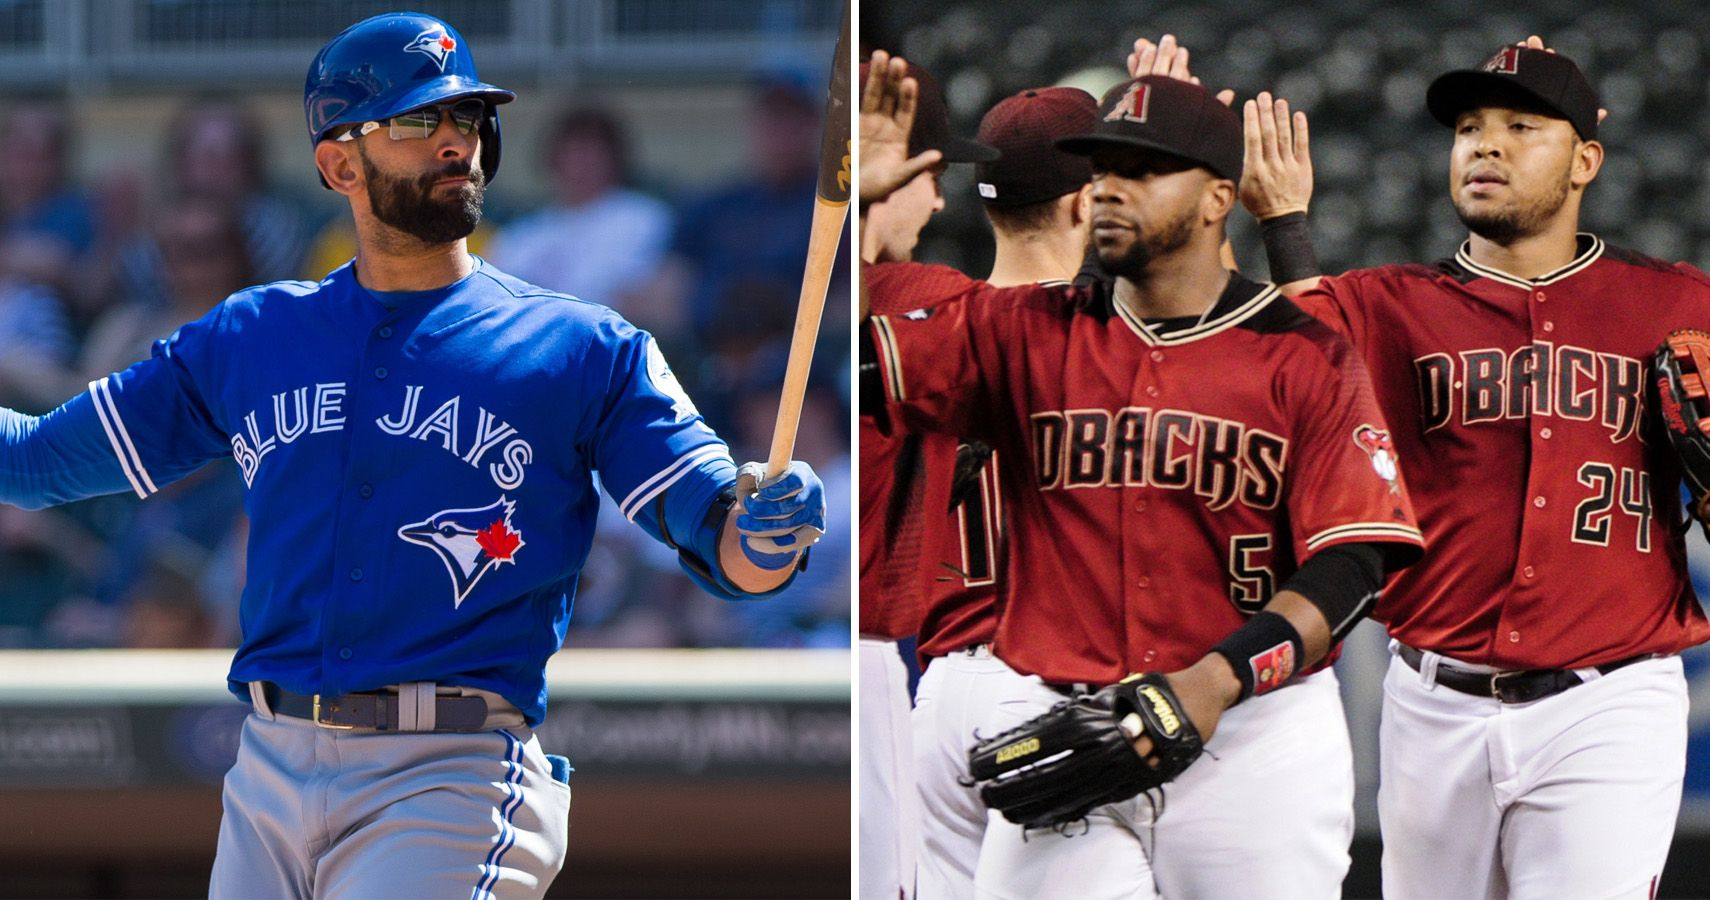 5987ac008 The 7 Best And 8 Worst MLB Jerseys Today